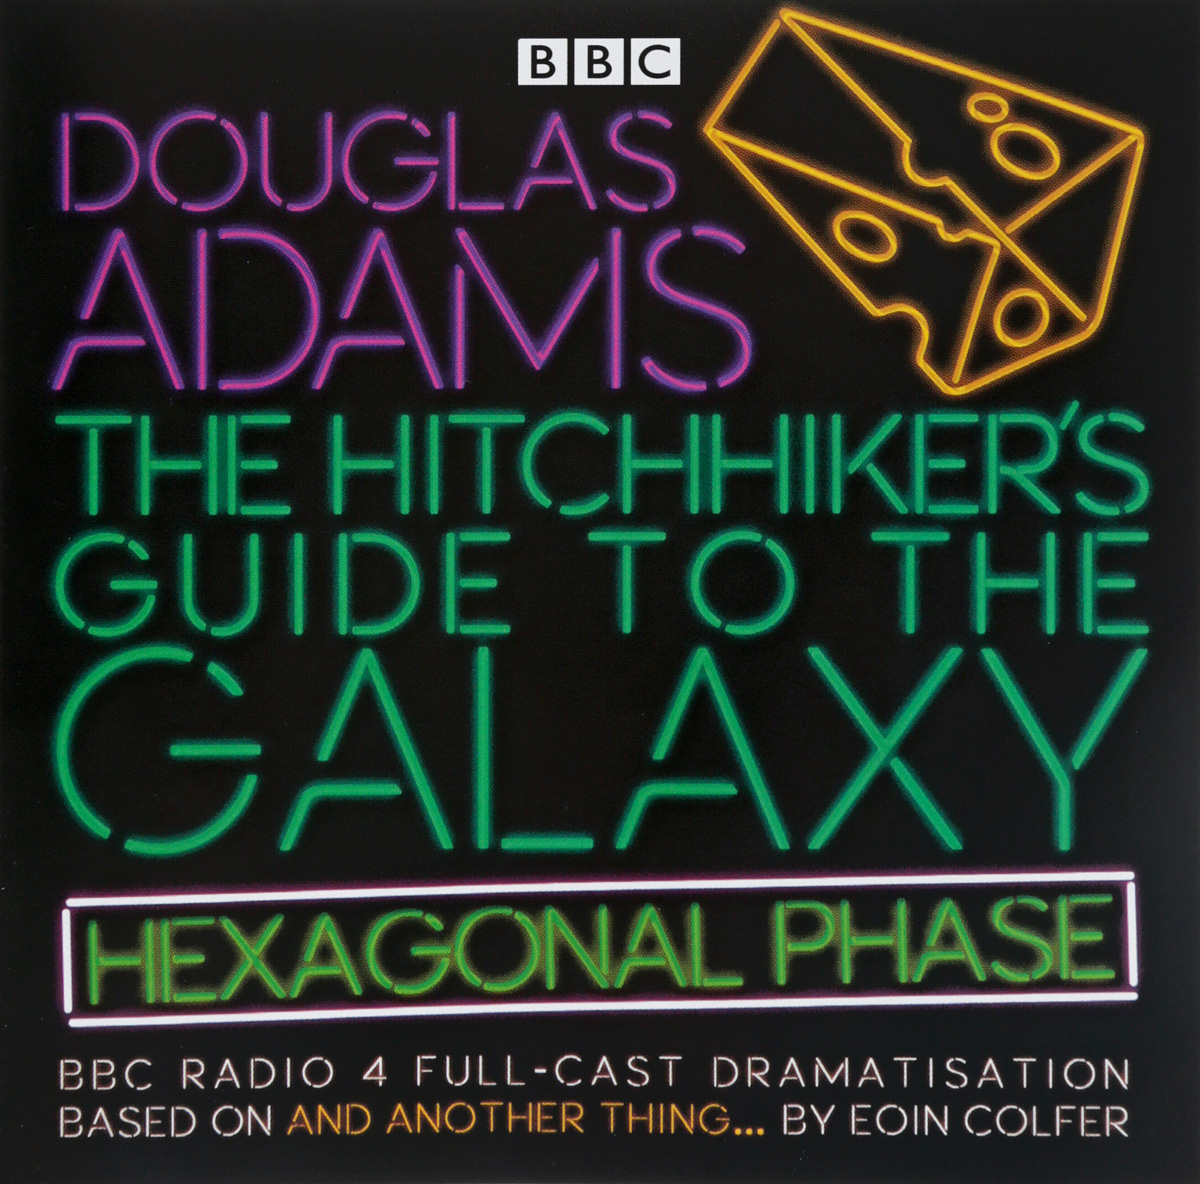 HITCHHIKERS GUIDE TO GALAXY dk eyewitness top 10 travel guide scotland